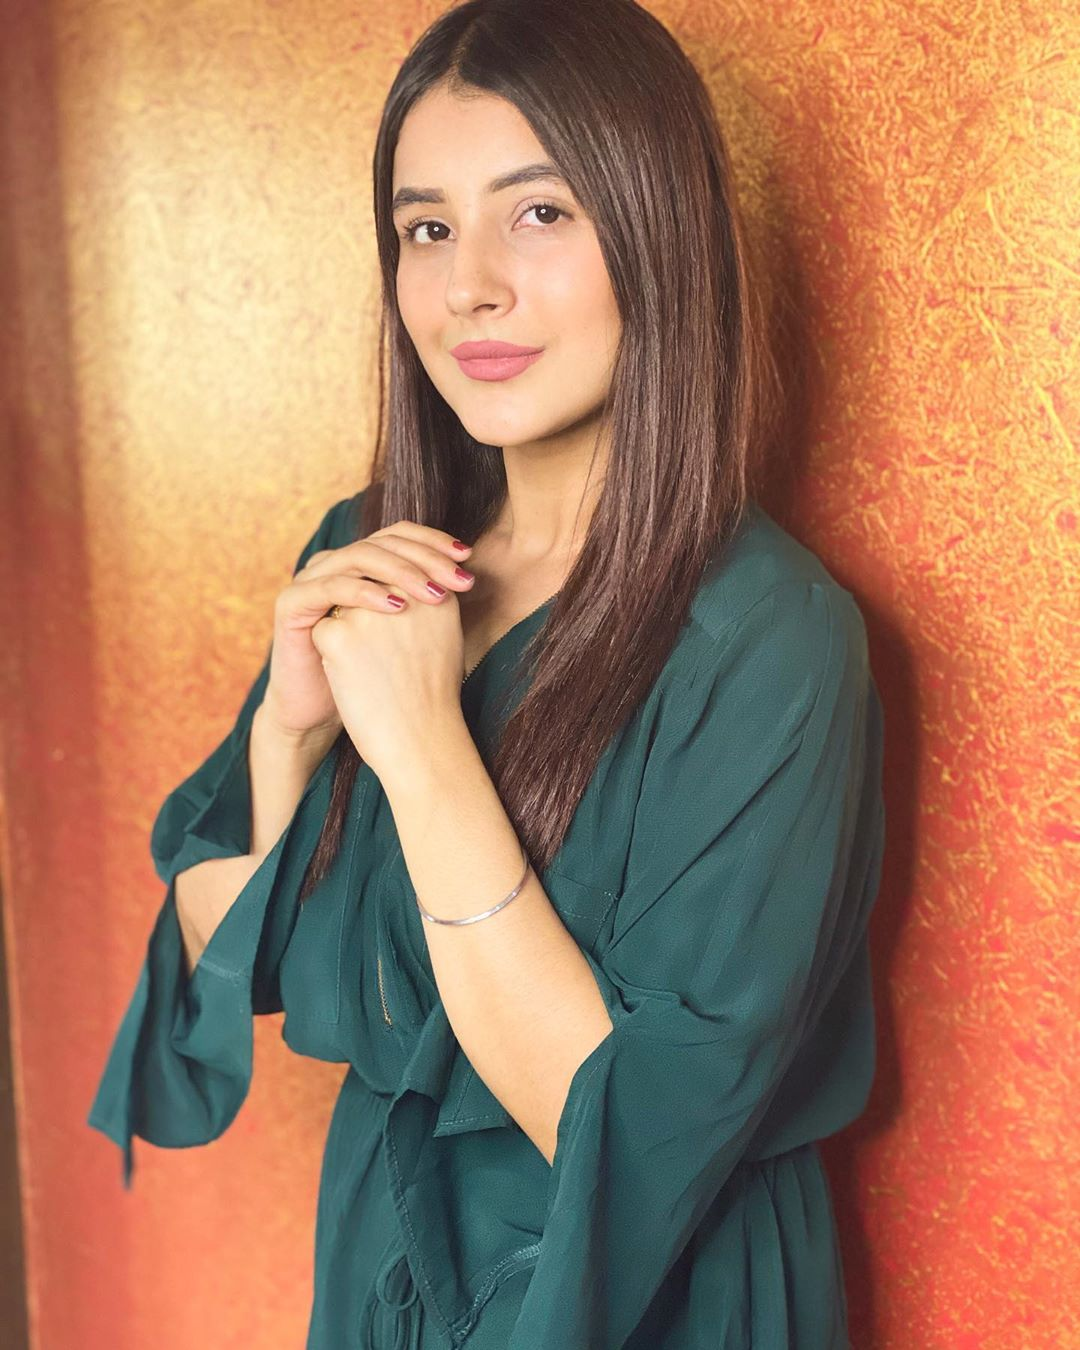 shehnaaz-gill-is-getting-so-much-money-for-endorsement-more-than-many-tv-stars-including-asim-riaz